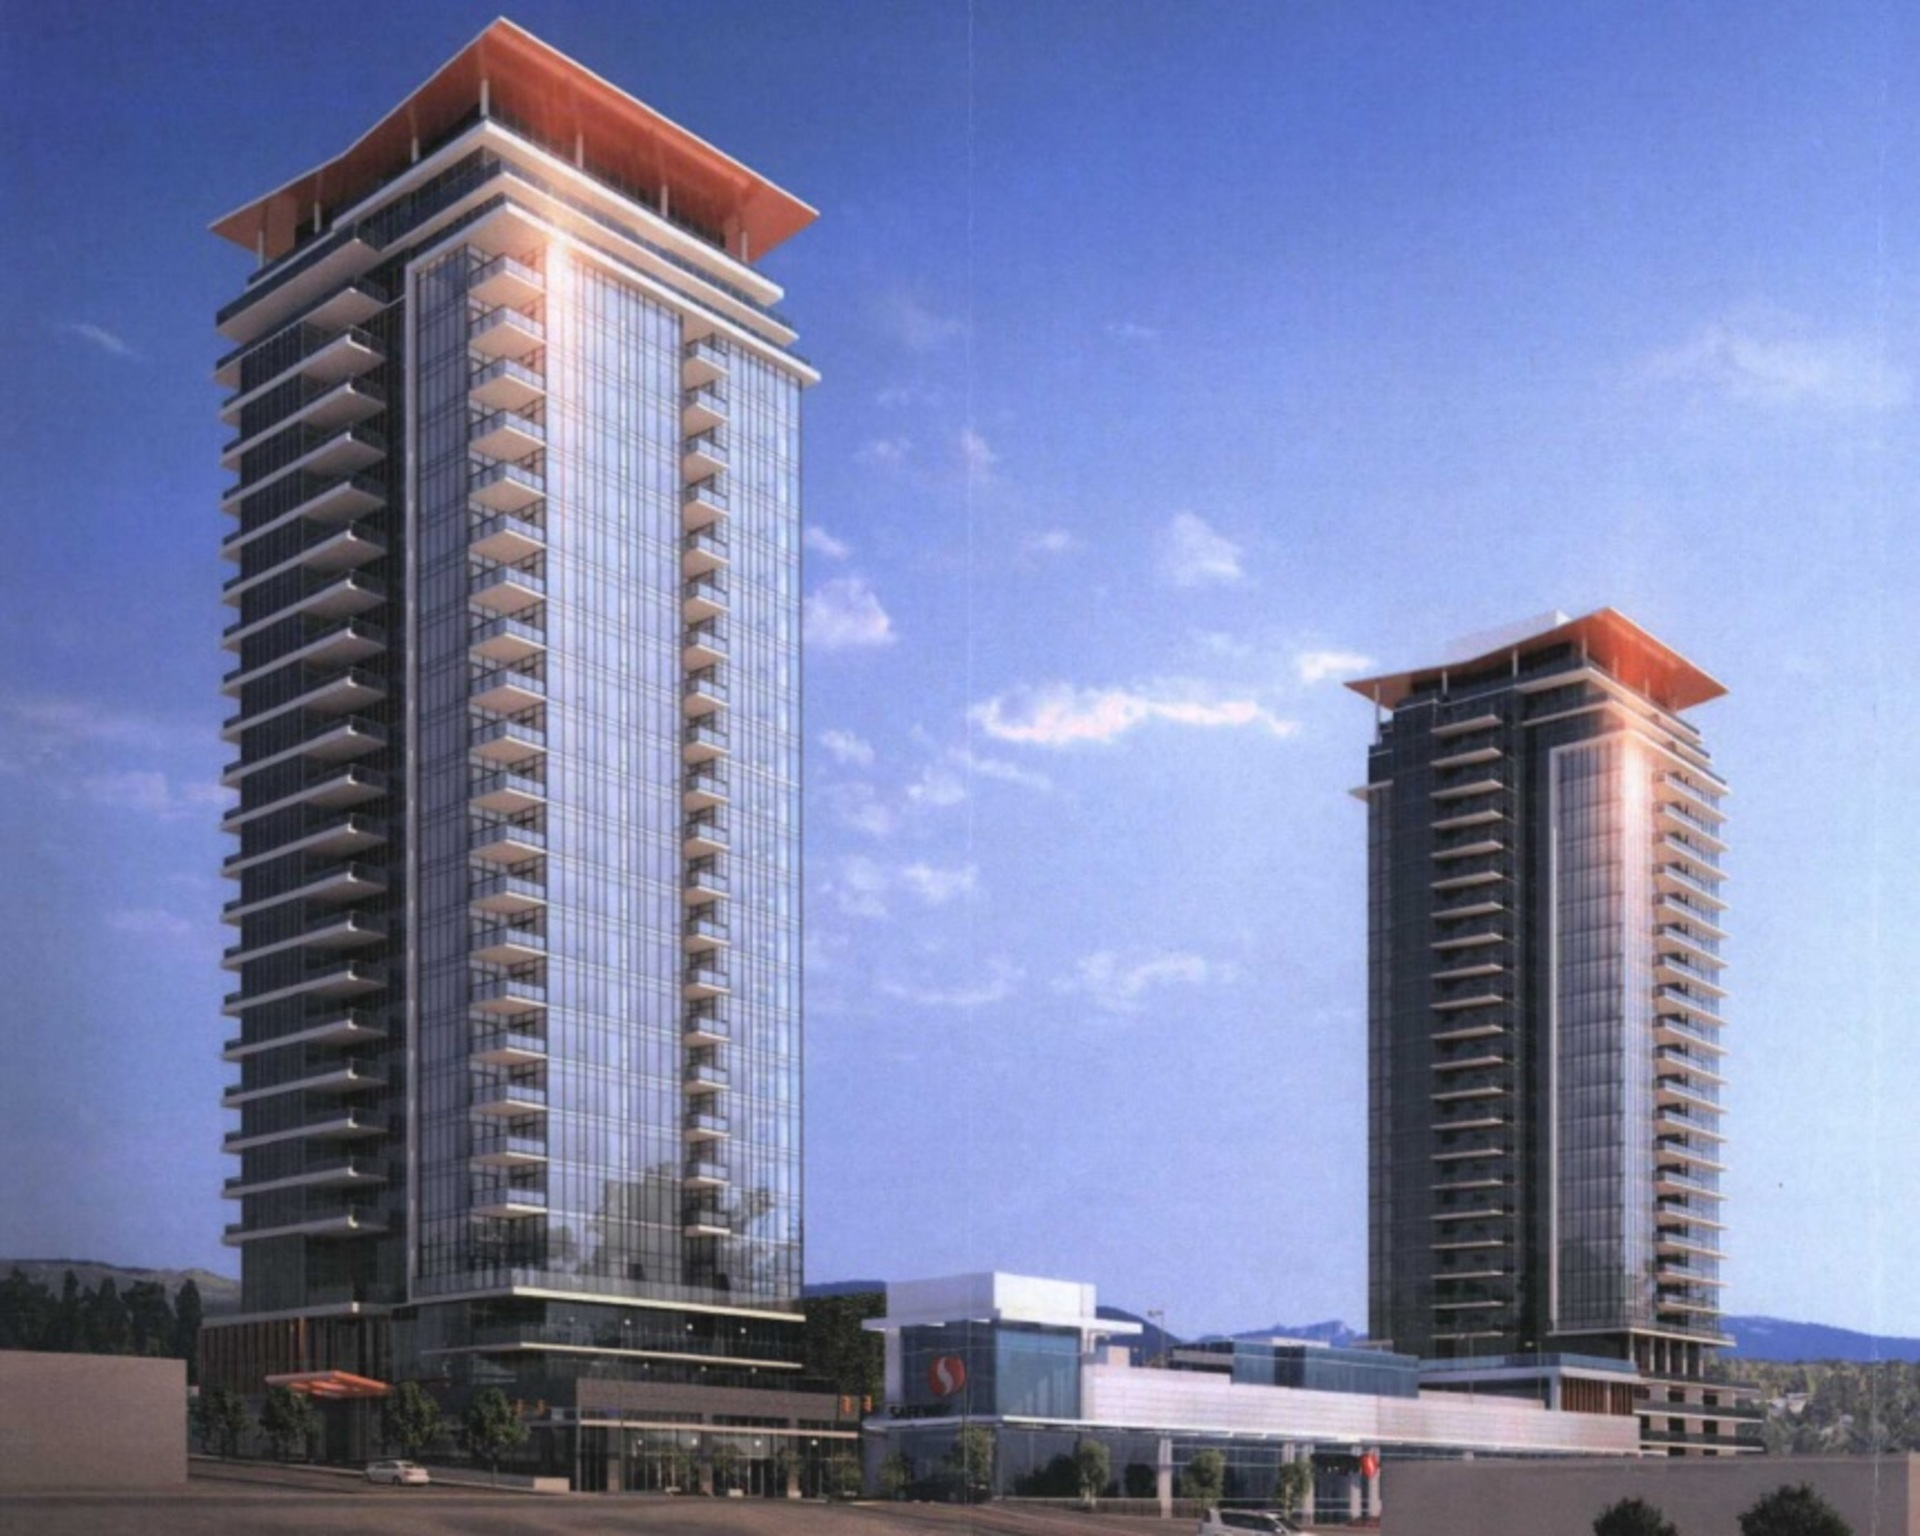 1029-1033 Austin Avenue, Coquitlam- Tower rendering 1 at West at The Heights on Austin (1029 Austin Avenue, Coquitlam West, Coquitlam)